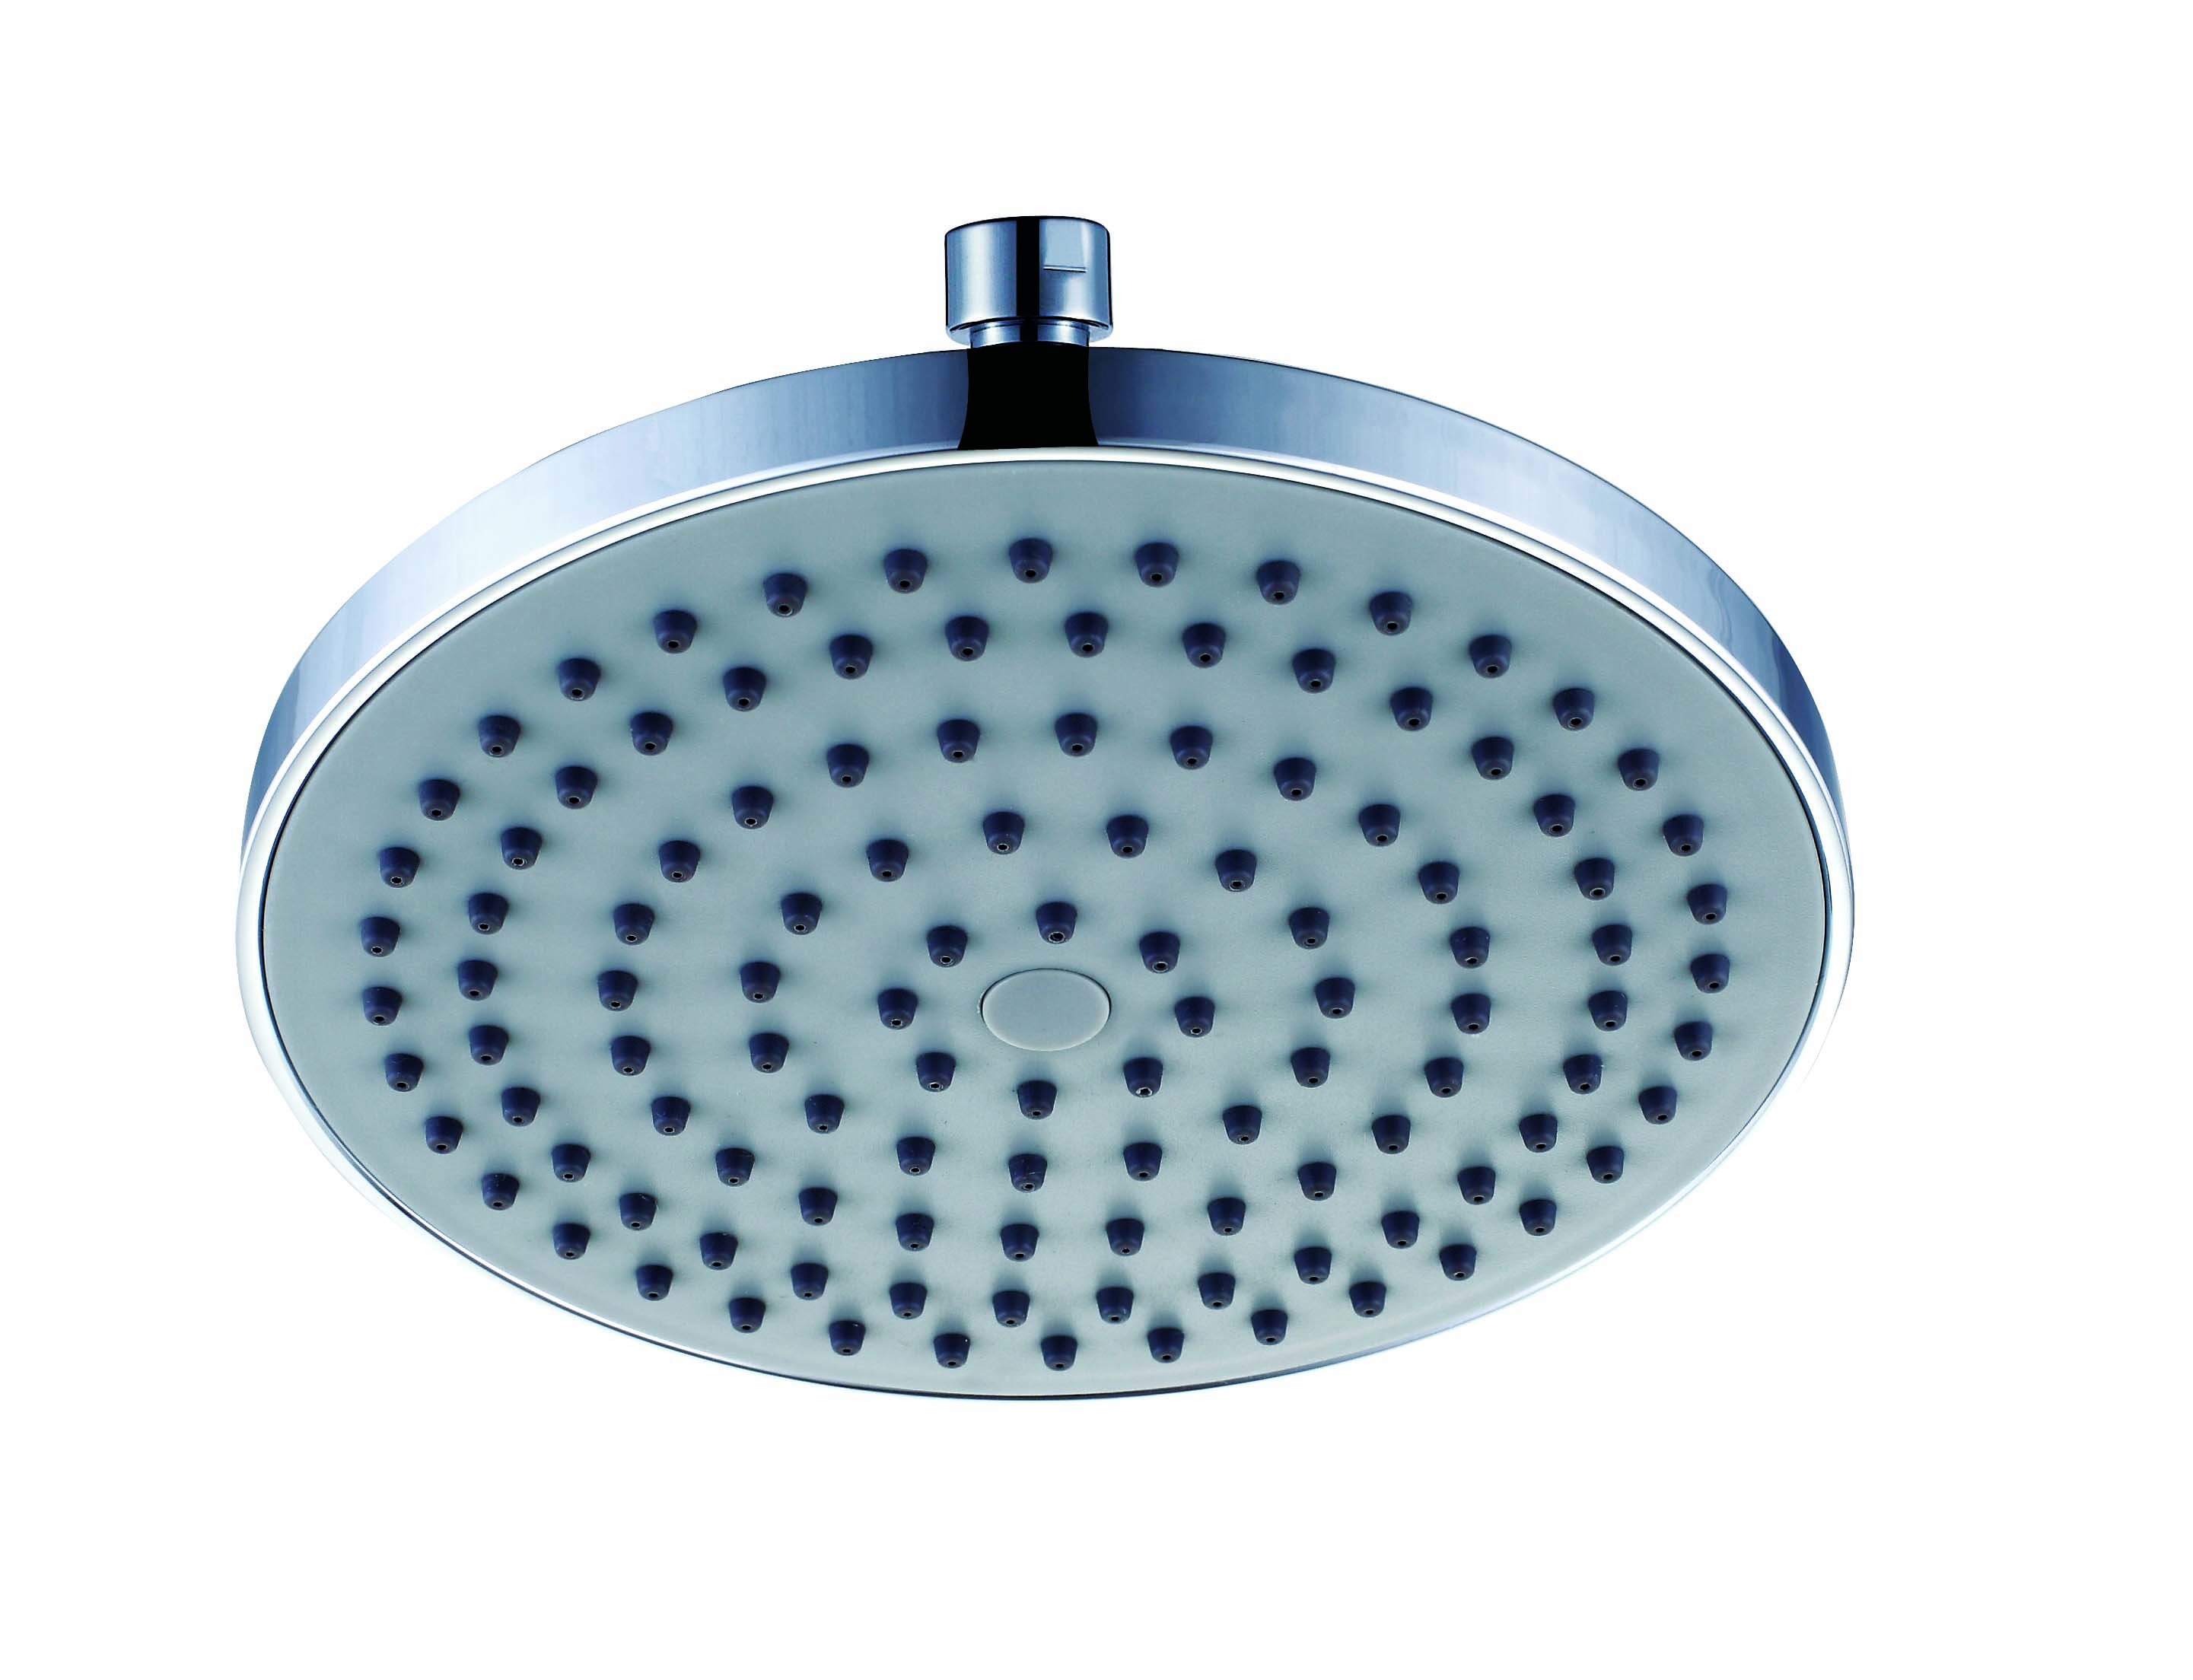 Rain Round Shower Head 200mm-Fit Wall Or Ceiling Arms | Sydney ...